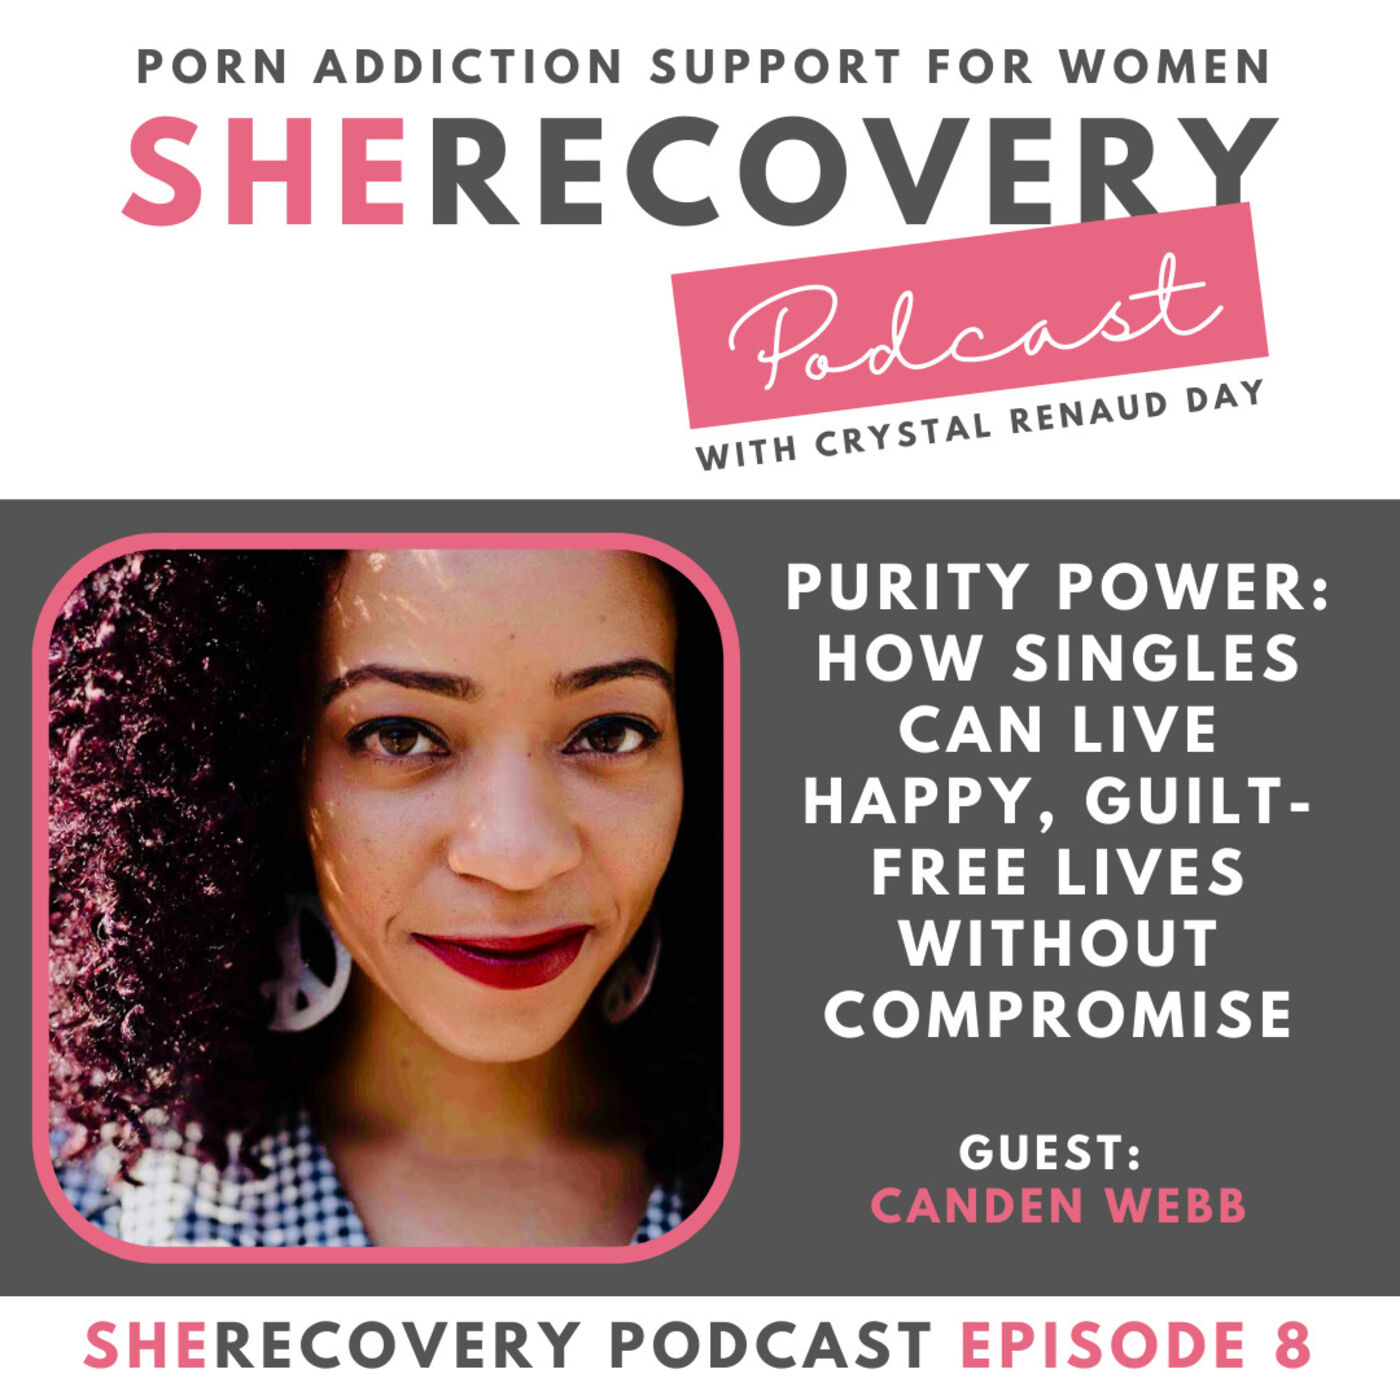 S1 E8: Canden Webb - Purity Power: How Singles Can Live Happy, Guilt-Free Lives Without Compromise